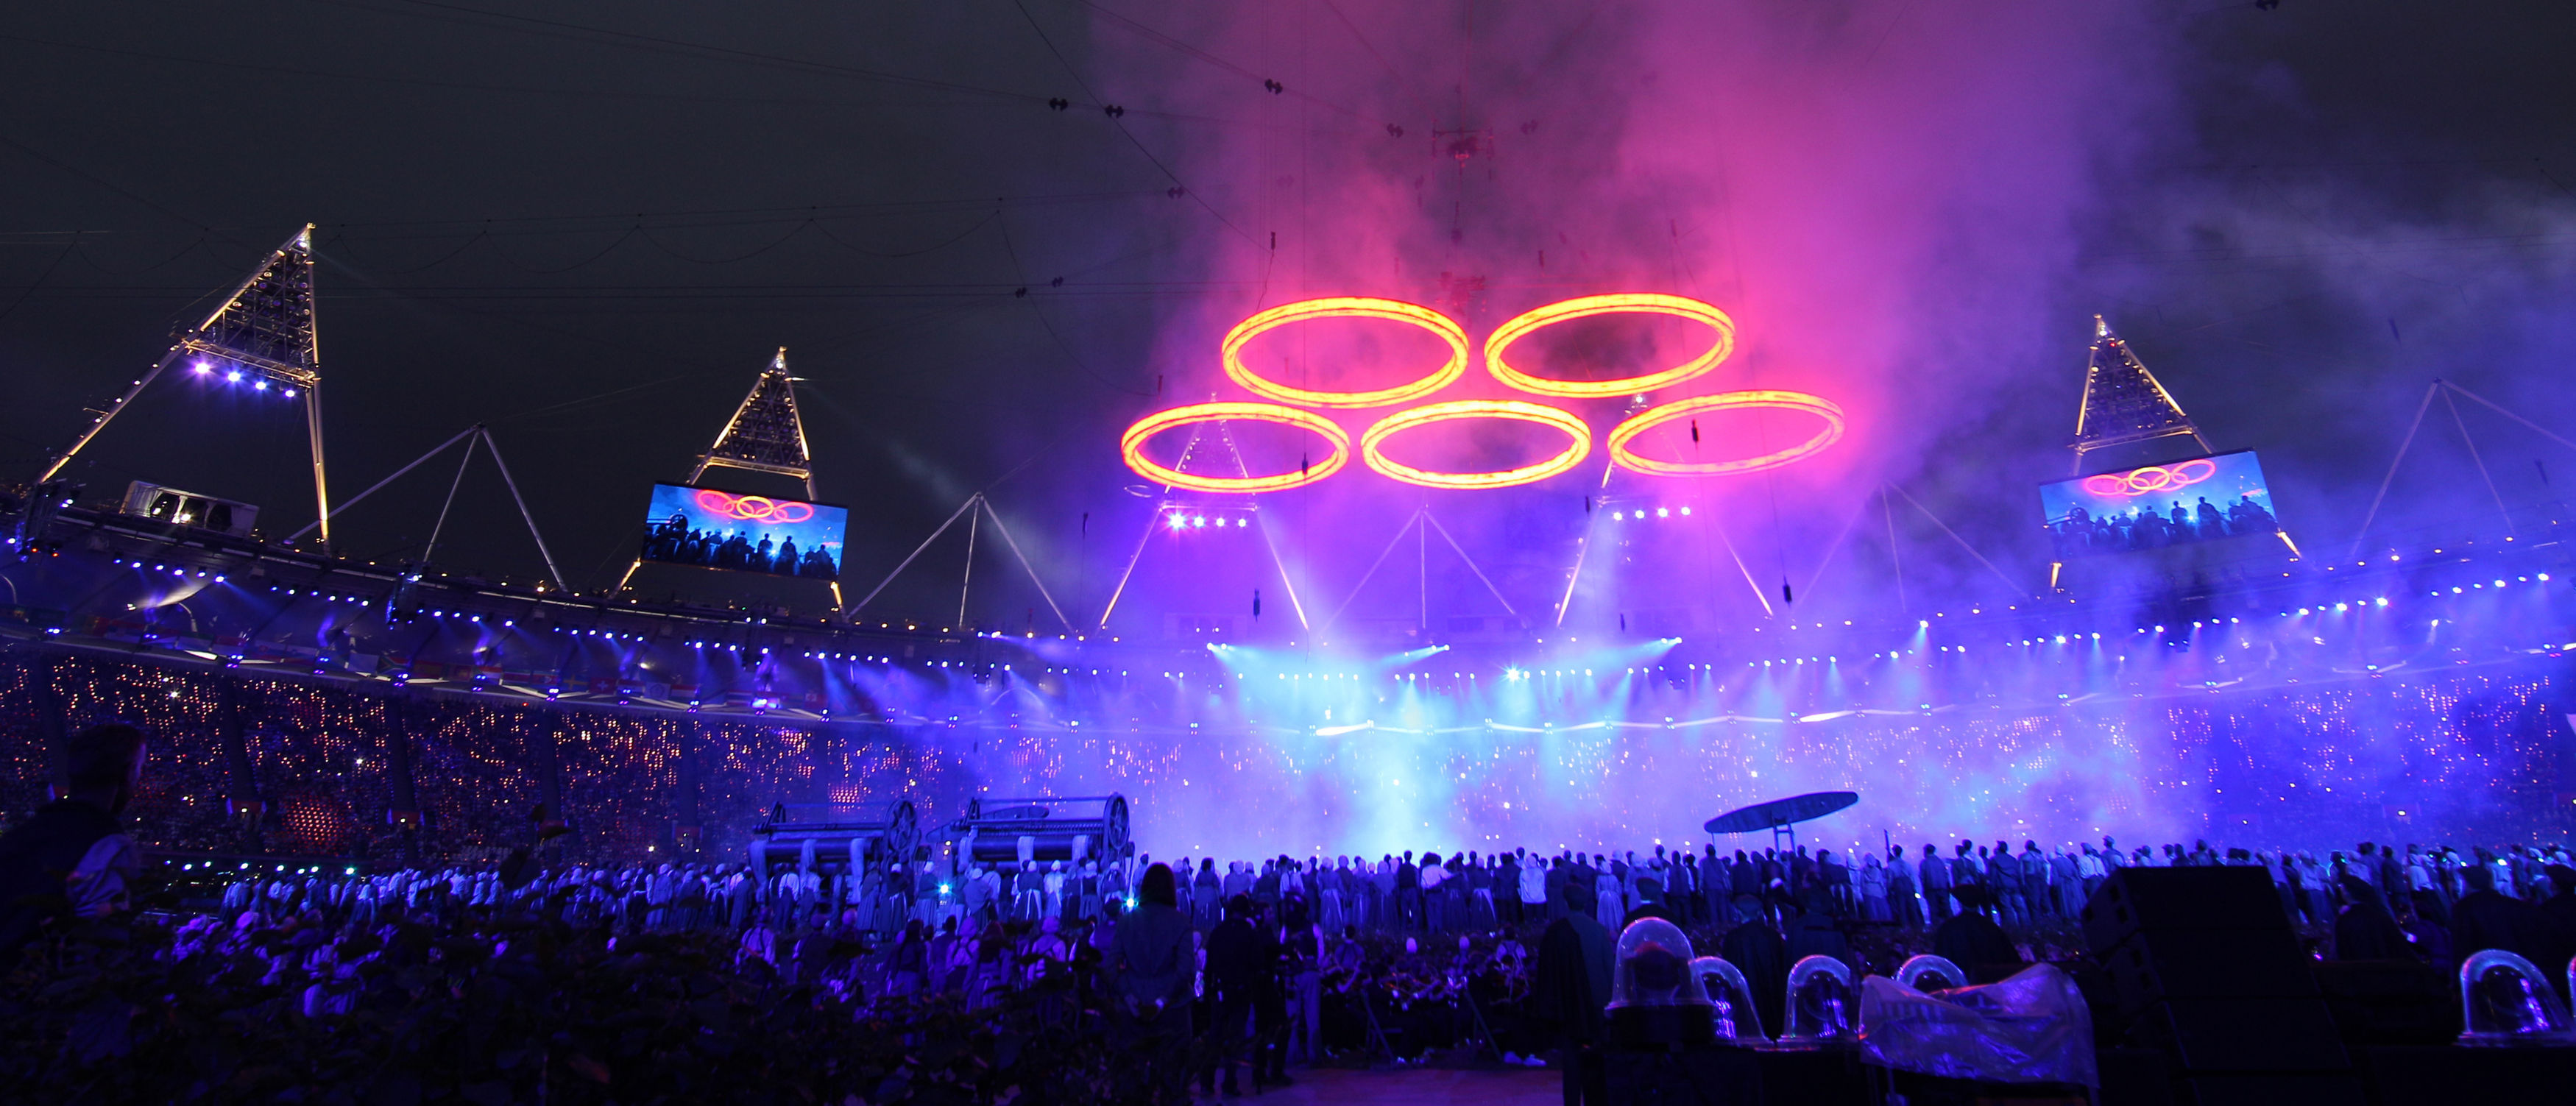 The London Olympic Games 2012 opening ceremony